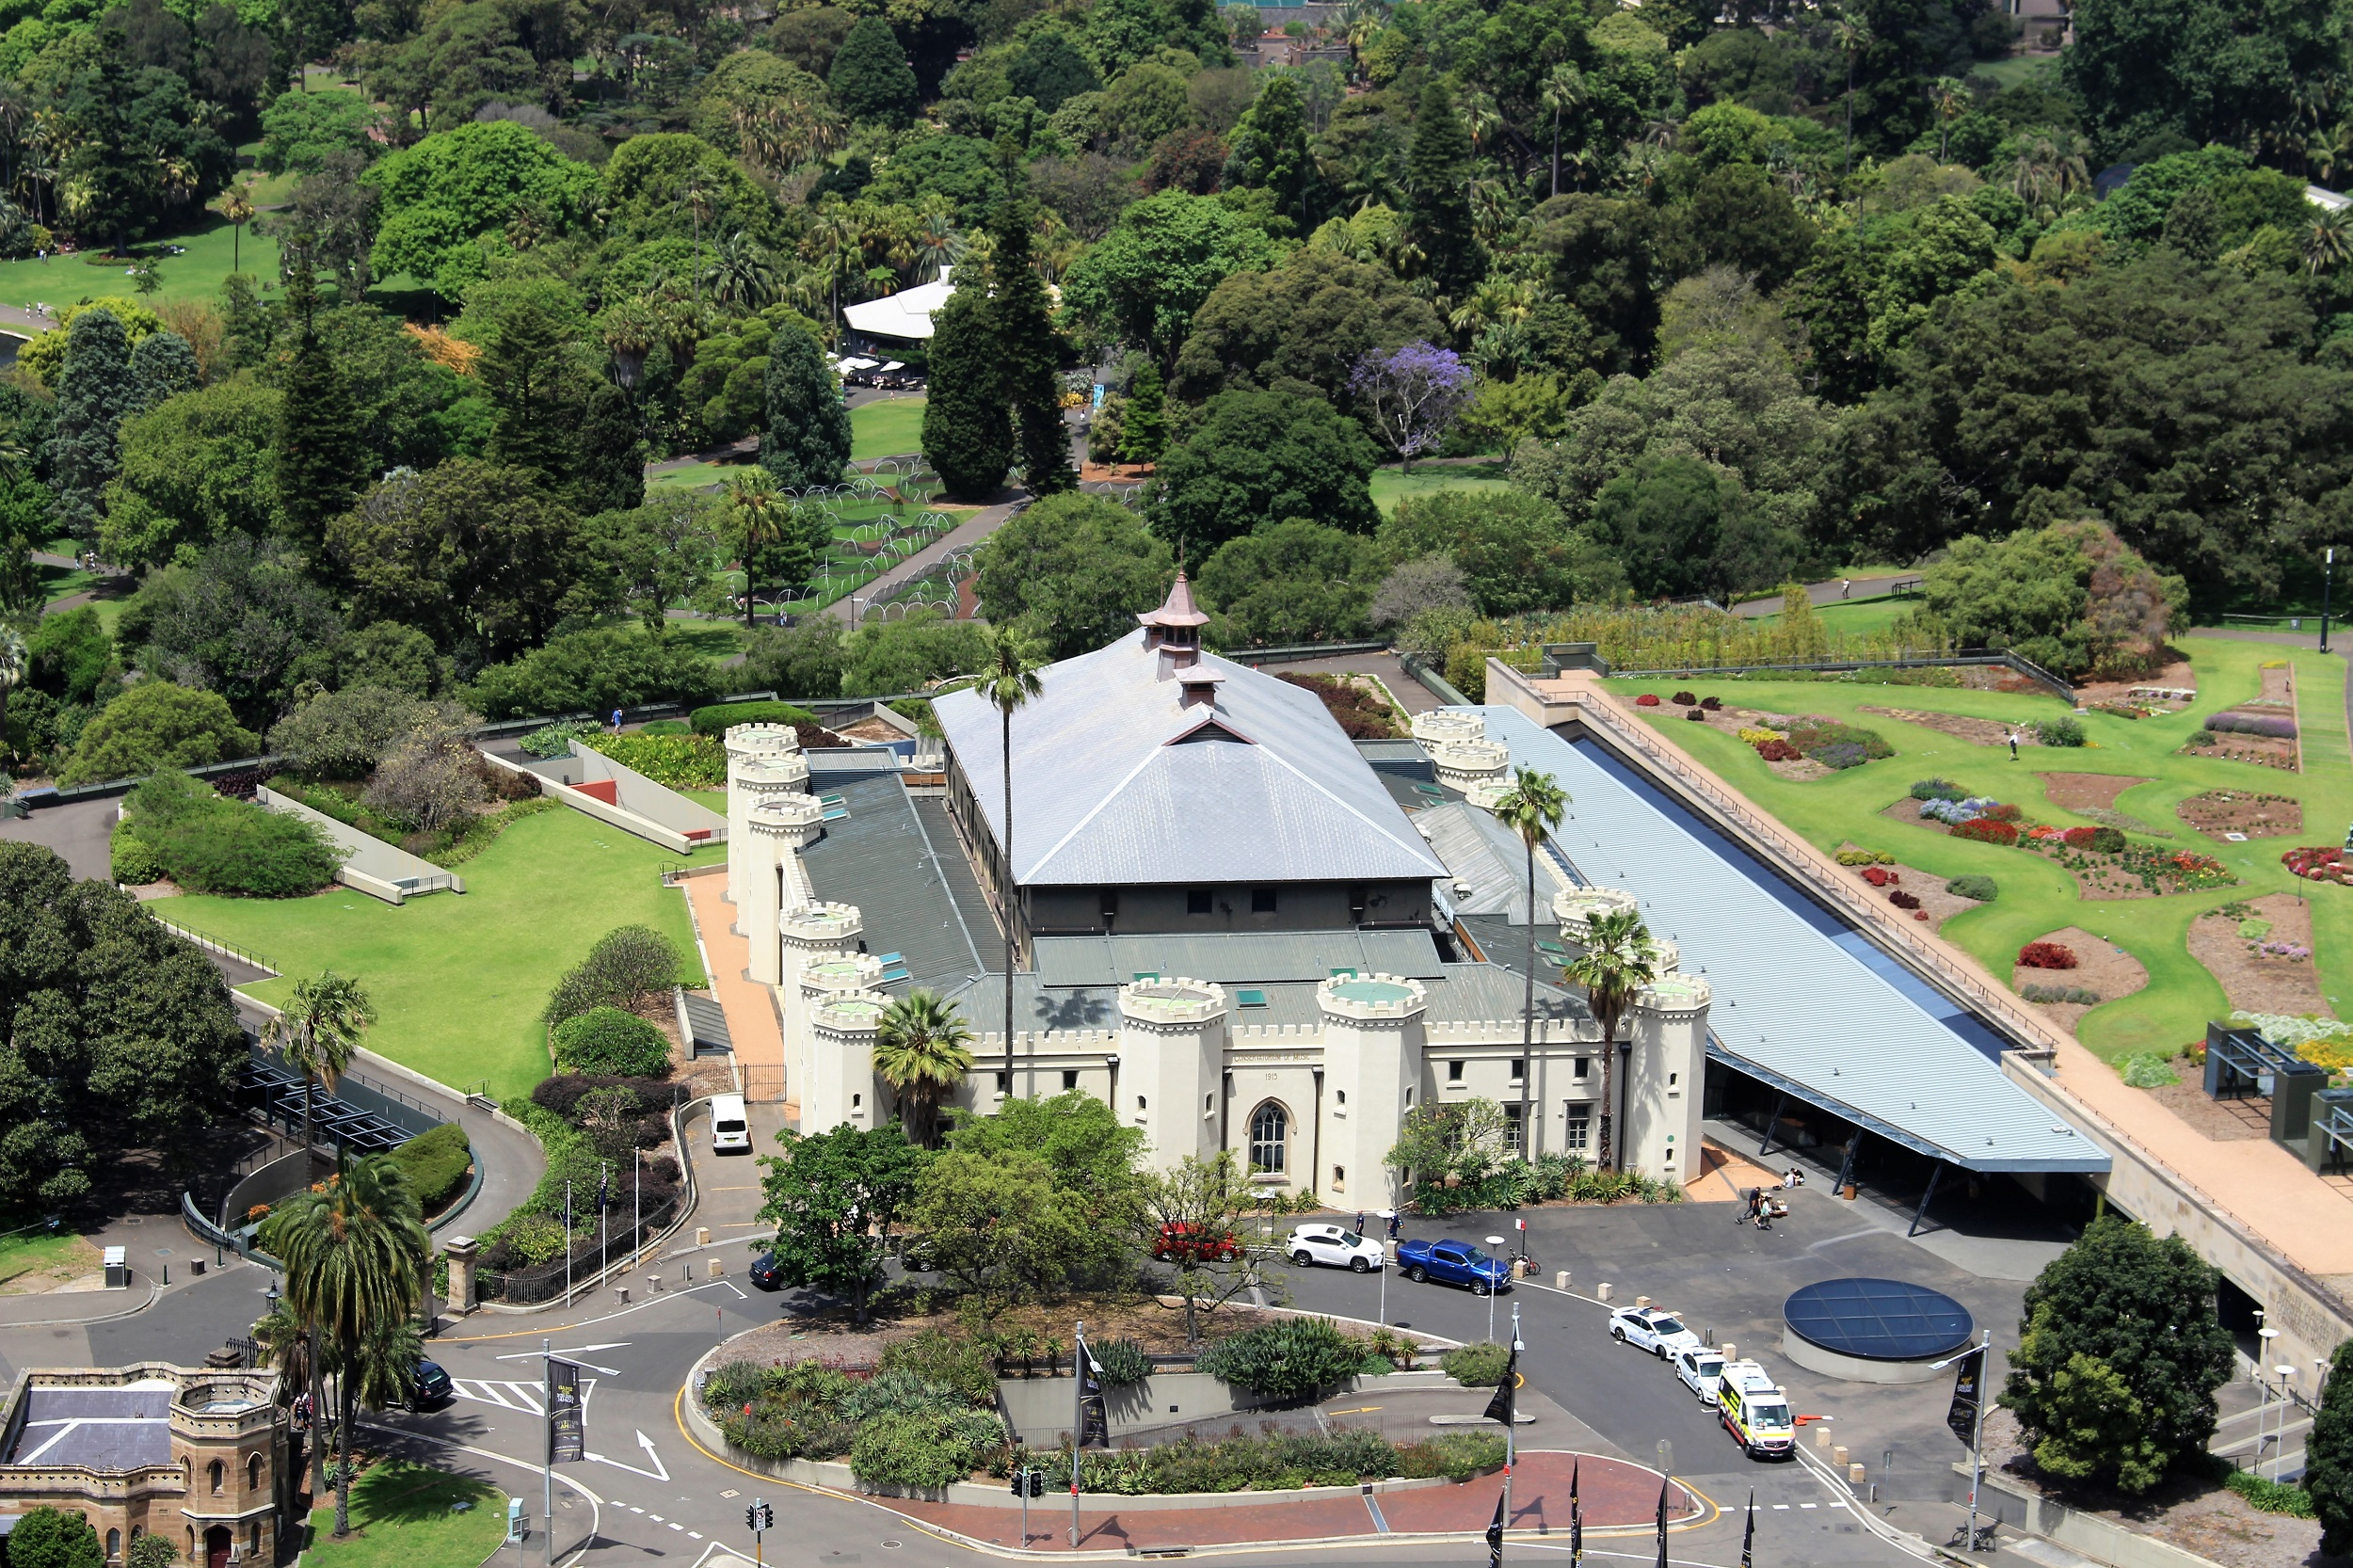 Sydney Conservatorium of Music and Sydney Royal Botanical Gardens